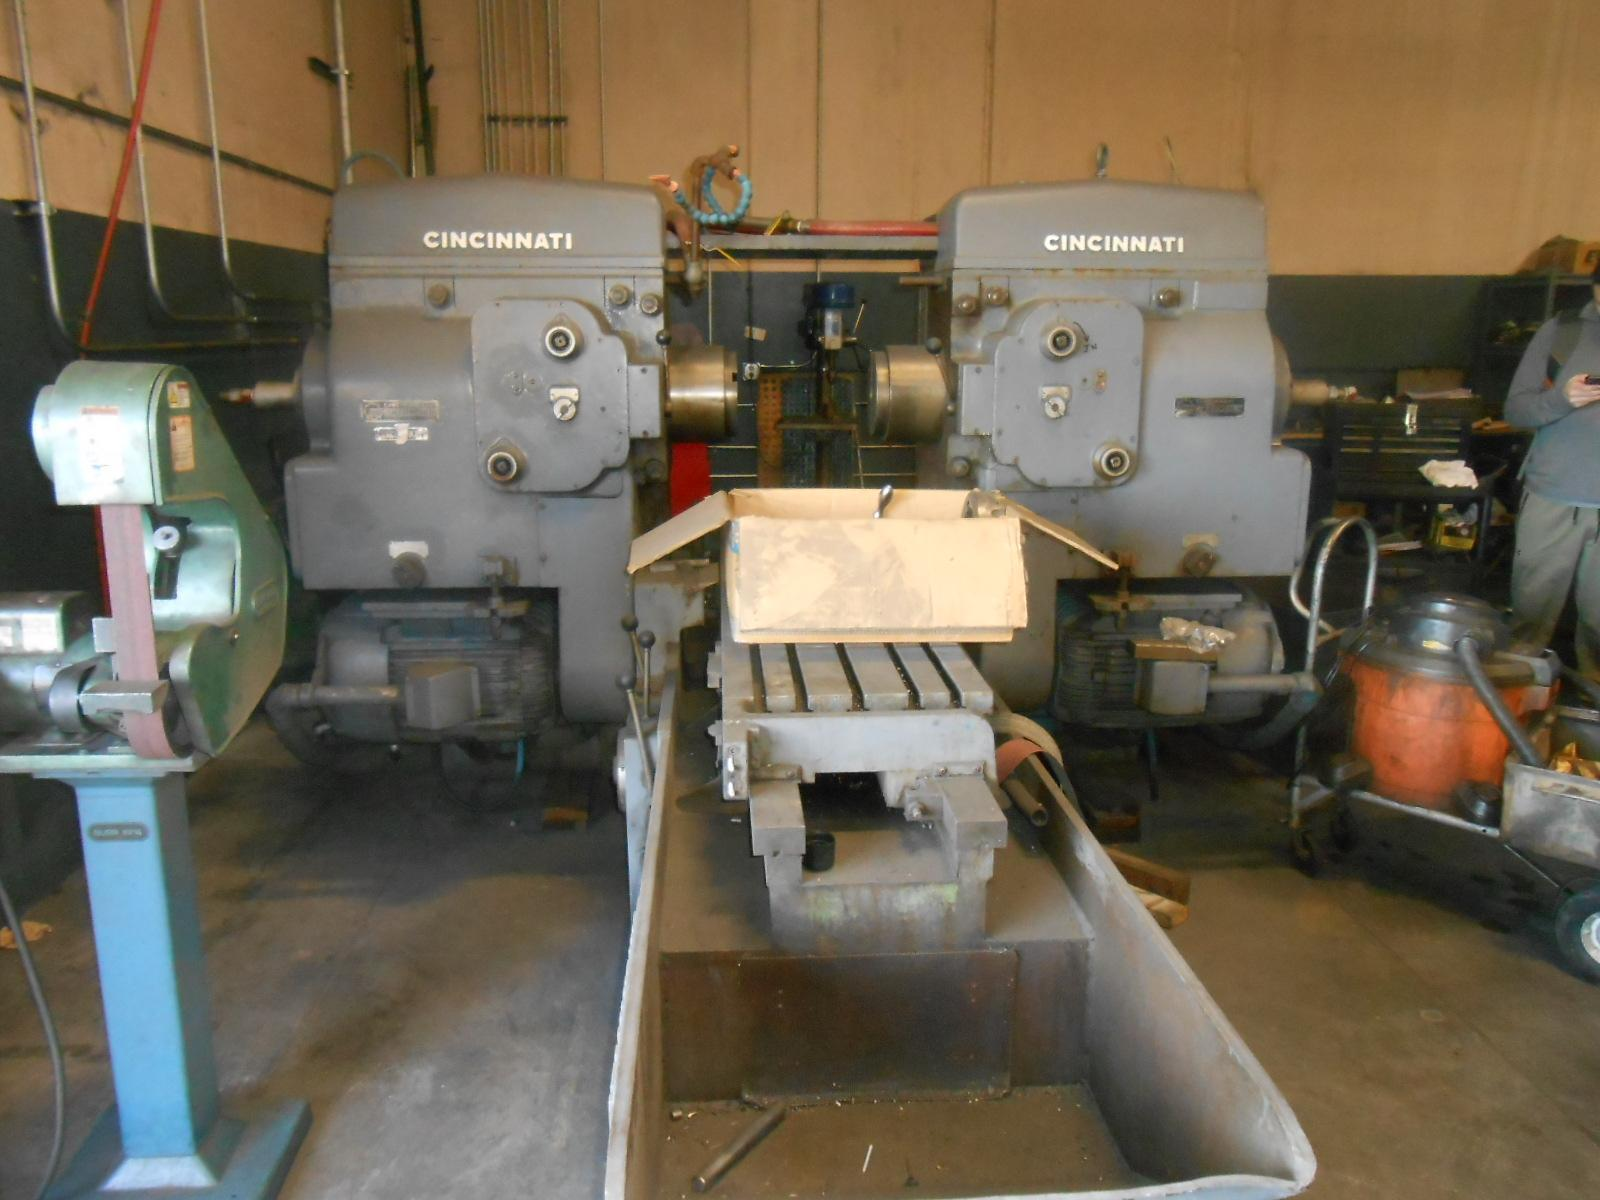 430-186 Cincinnati Ram Type Hypowermatic Duplex Production Milling Machine